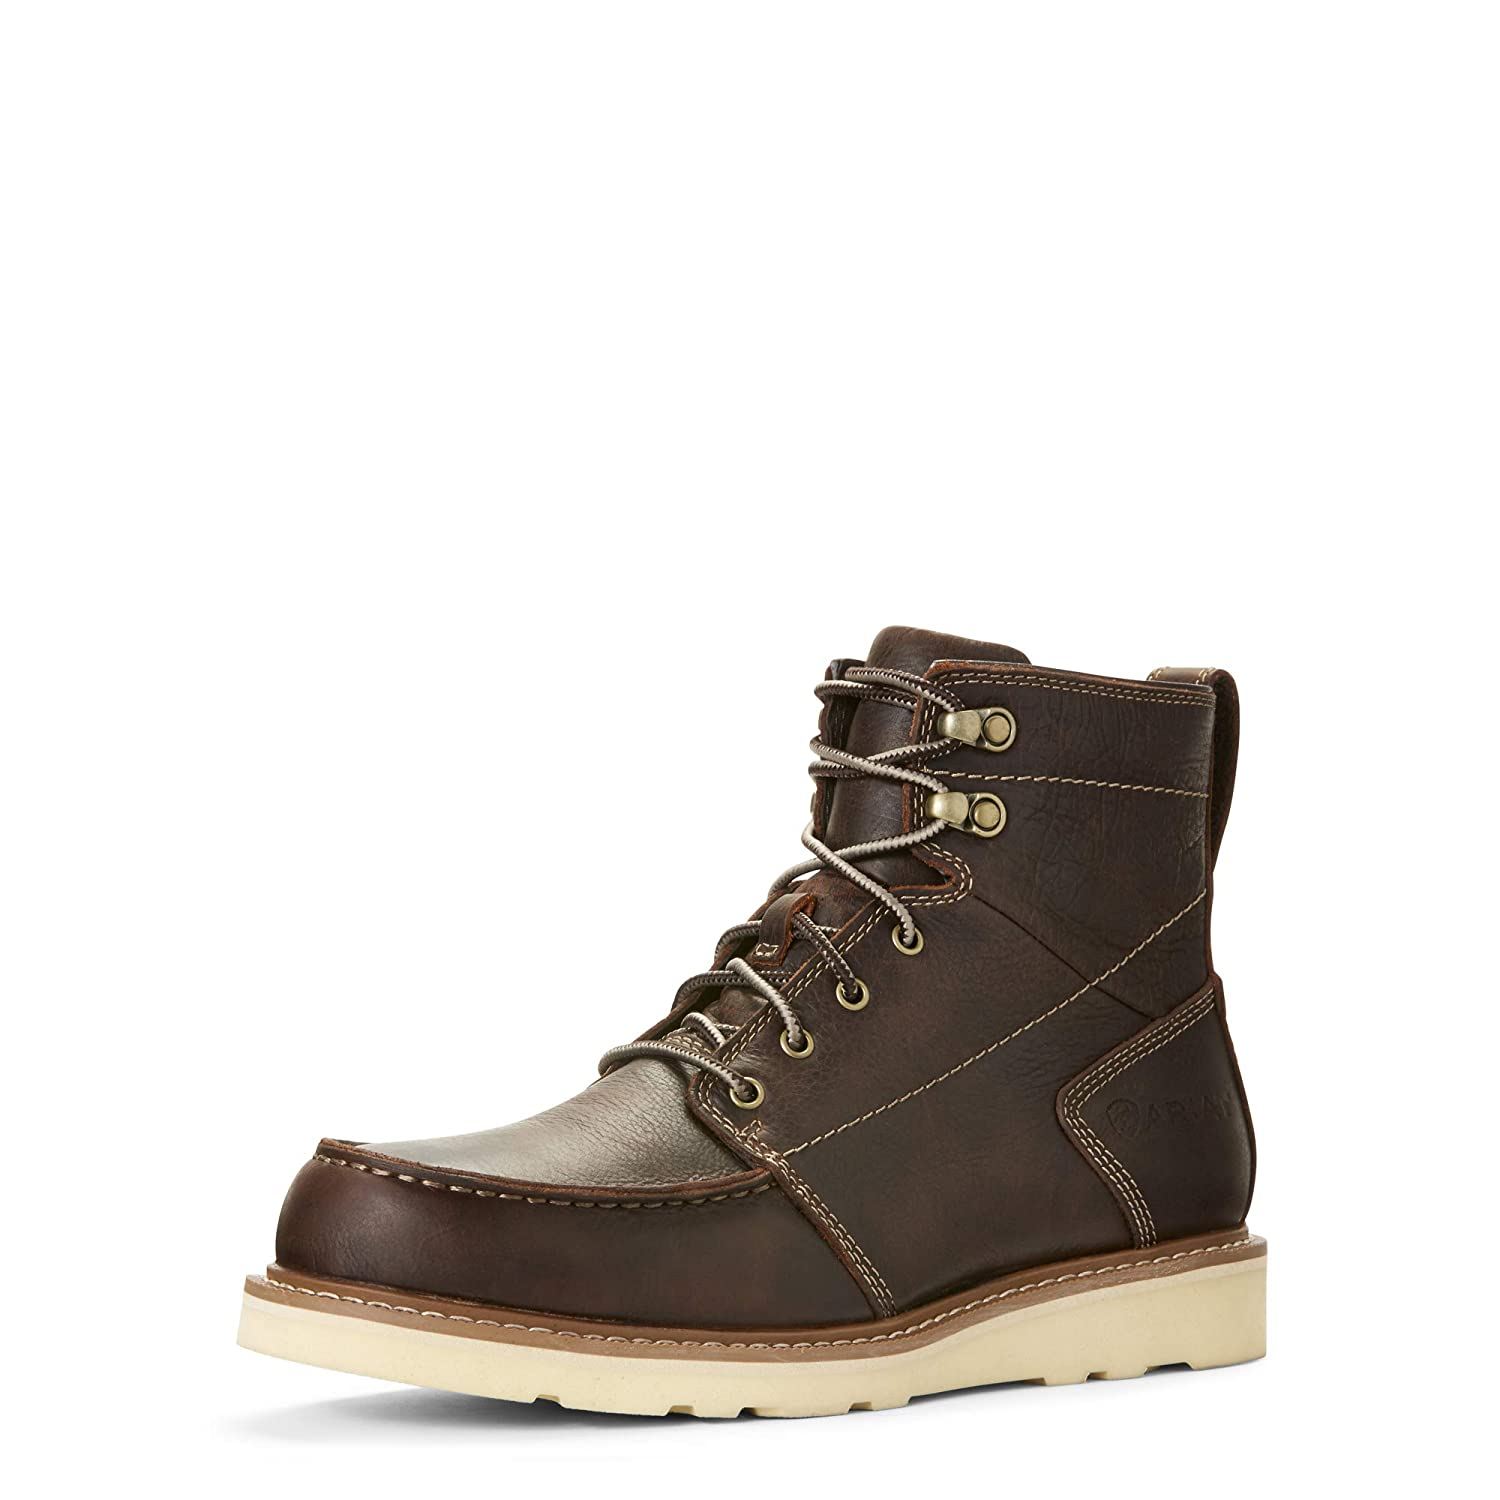 ARIAT Mens Recon Lace Boot Brewed Barley Size 7 M Us